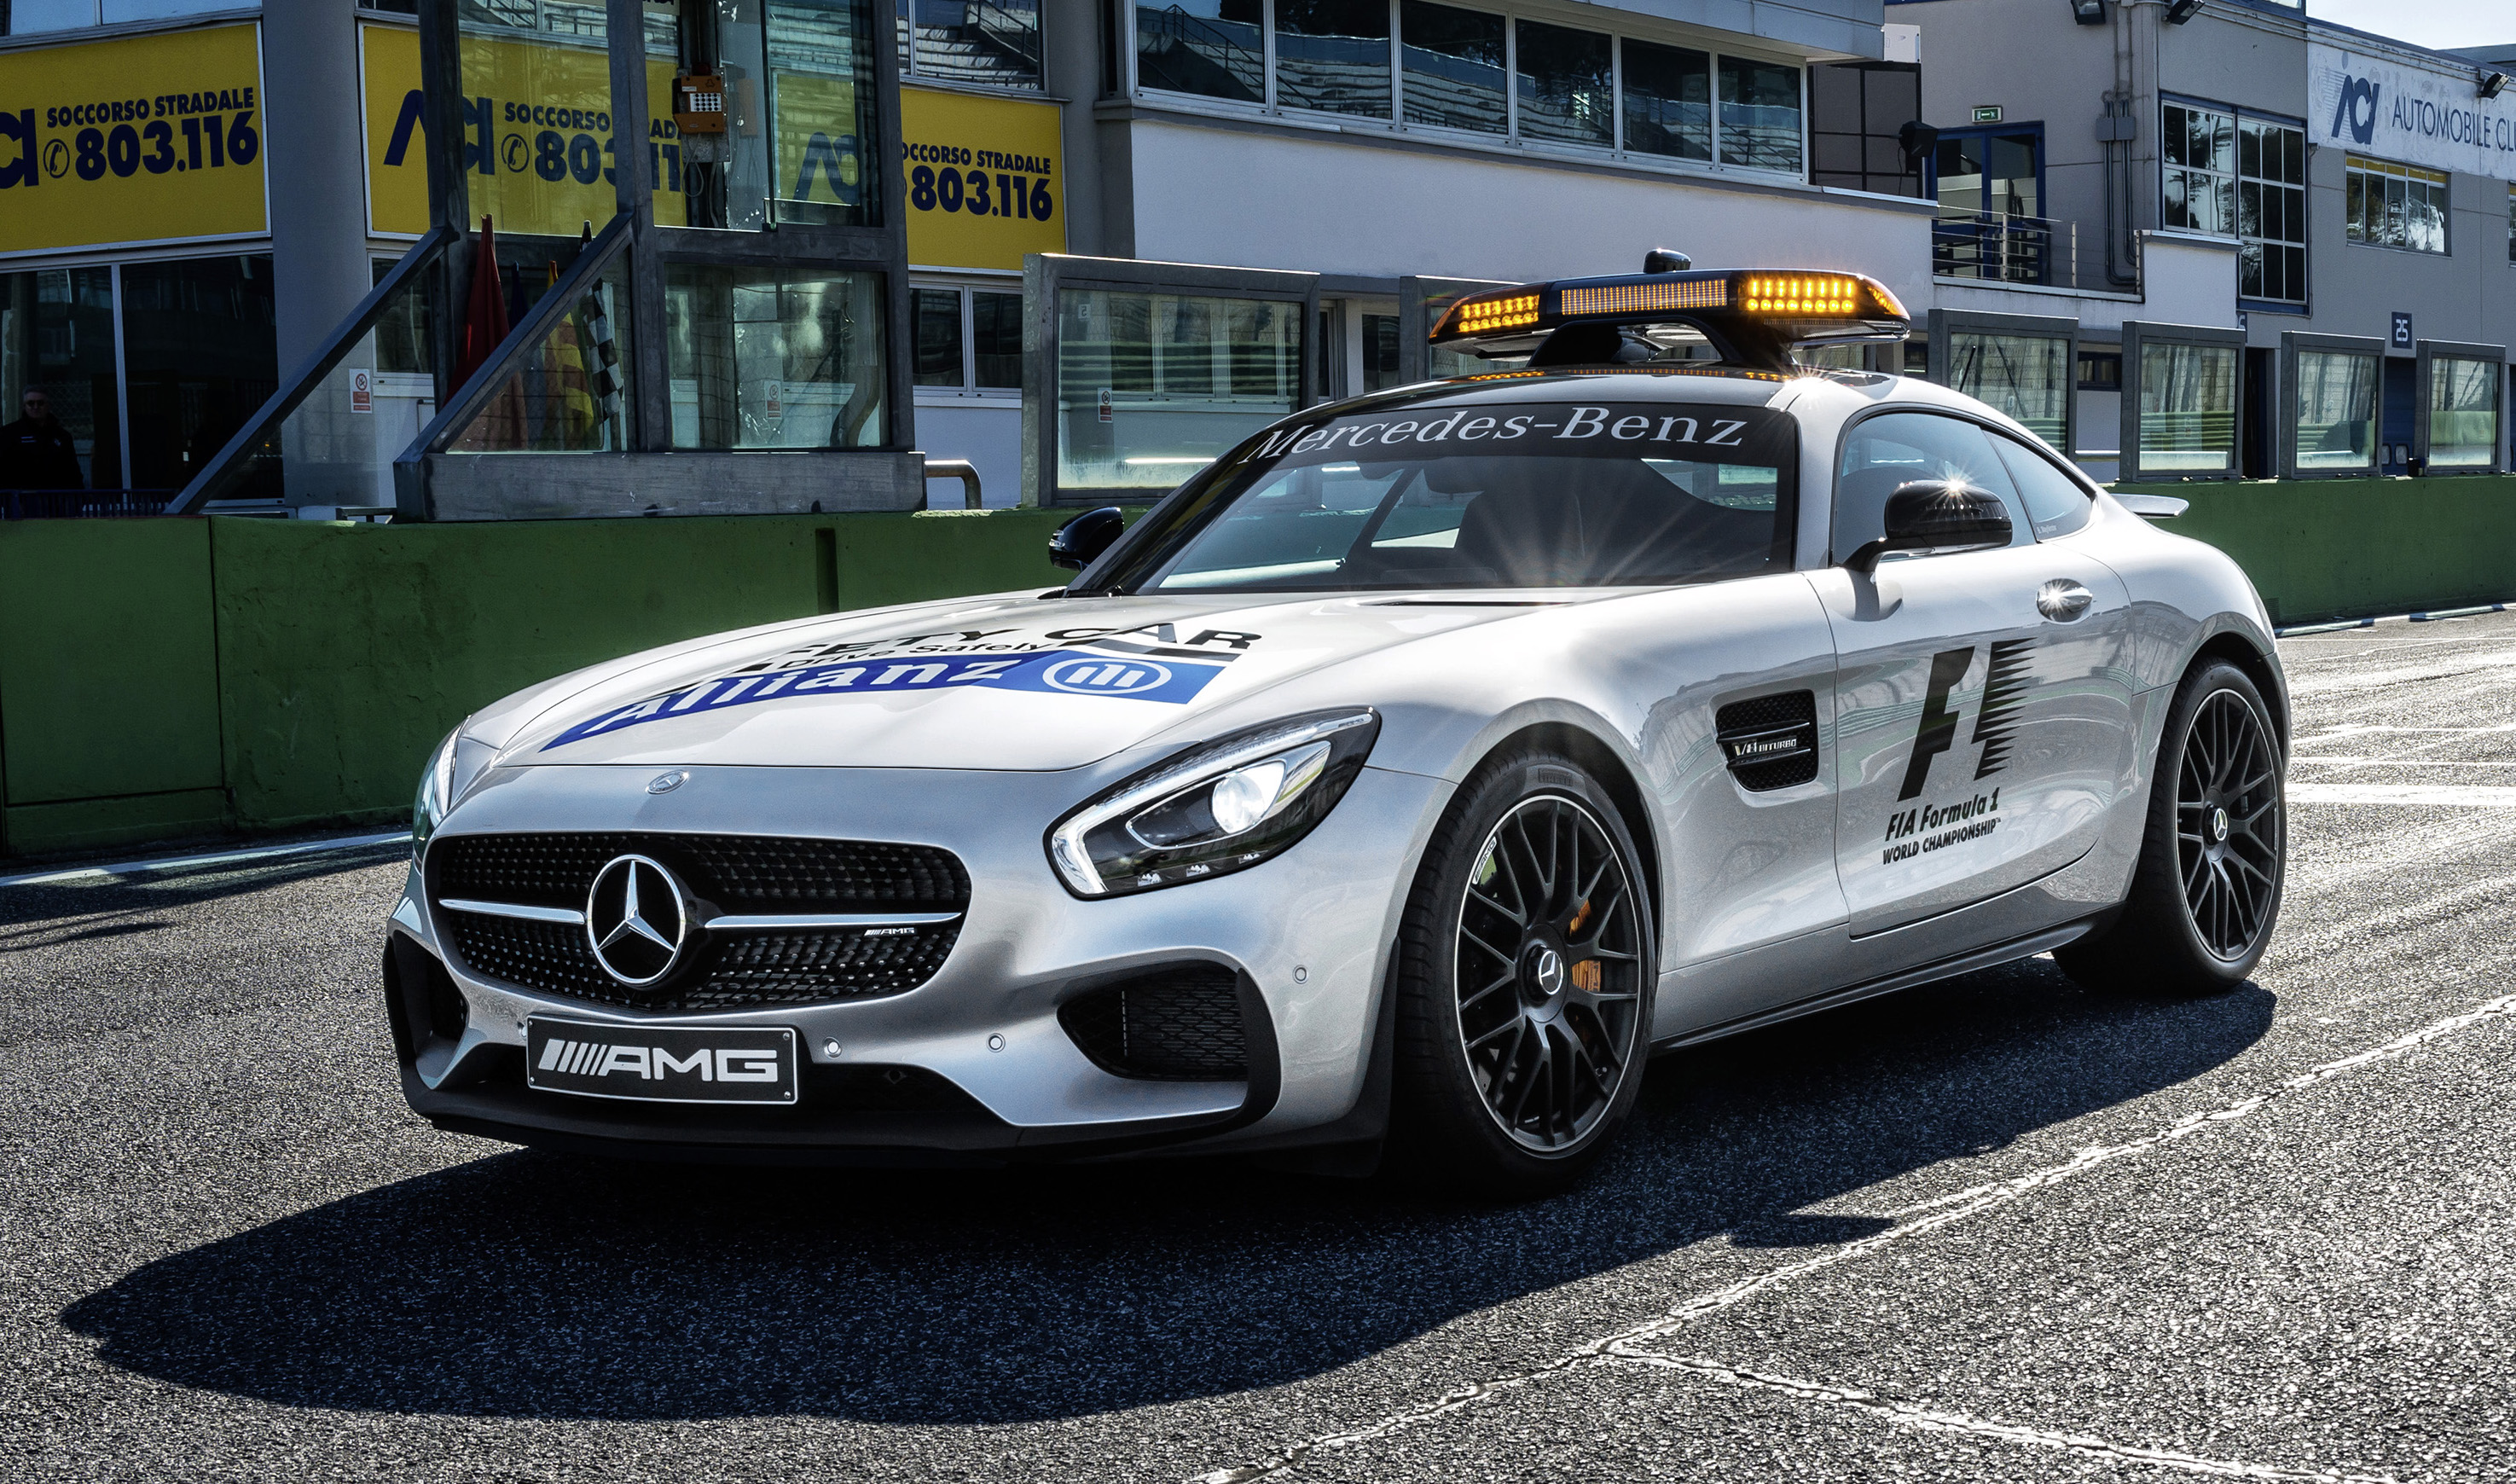 New F1 Safety Car and Medical Car unveiled for 2015 ...